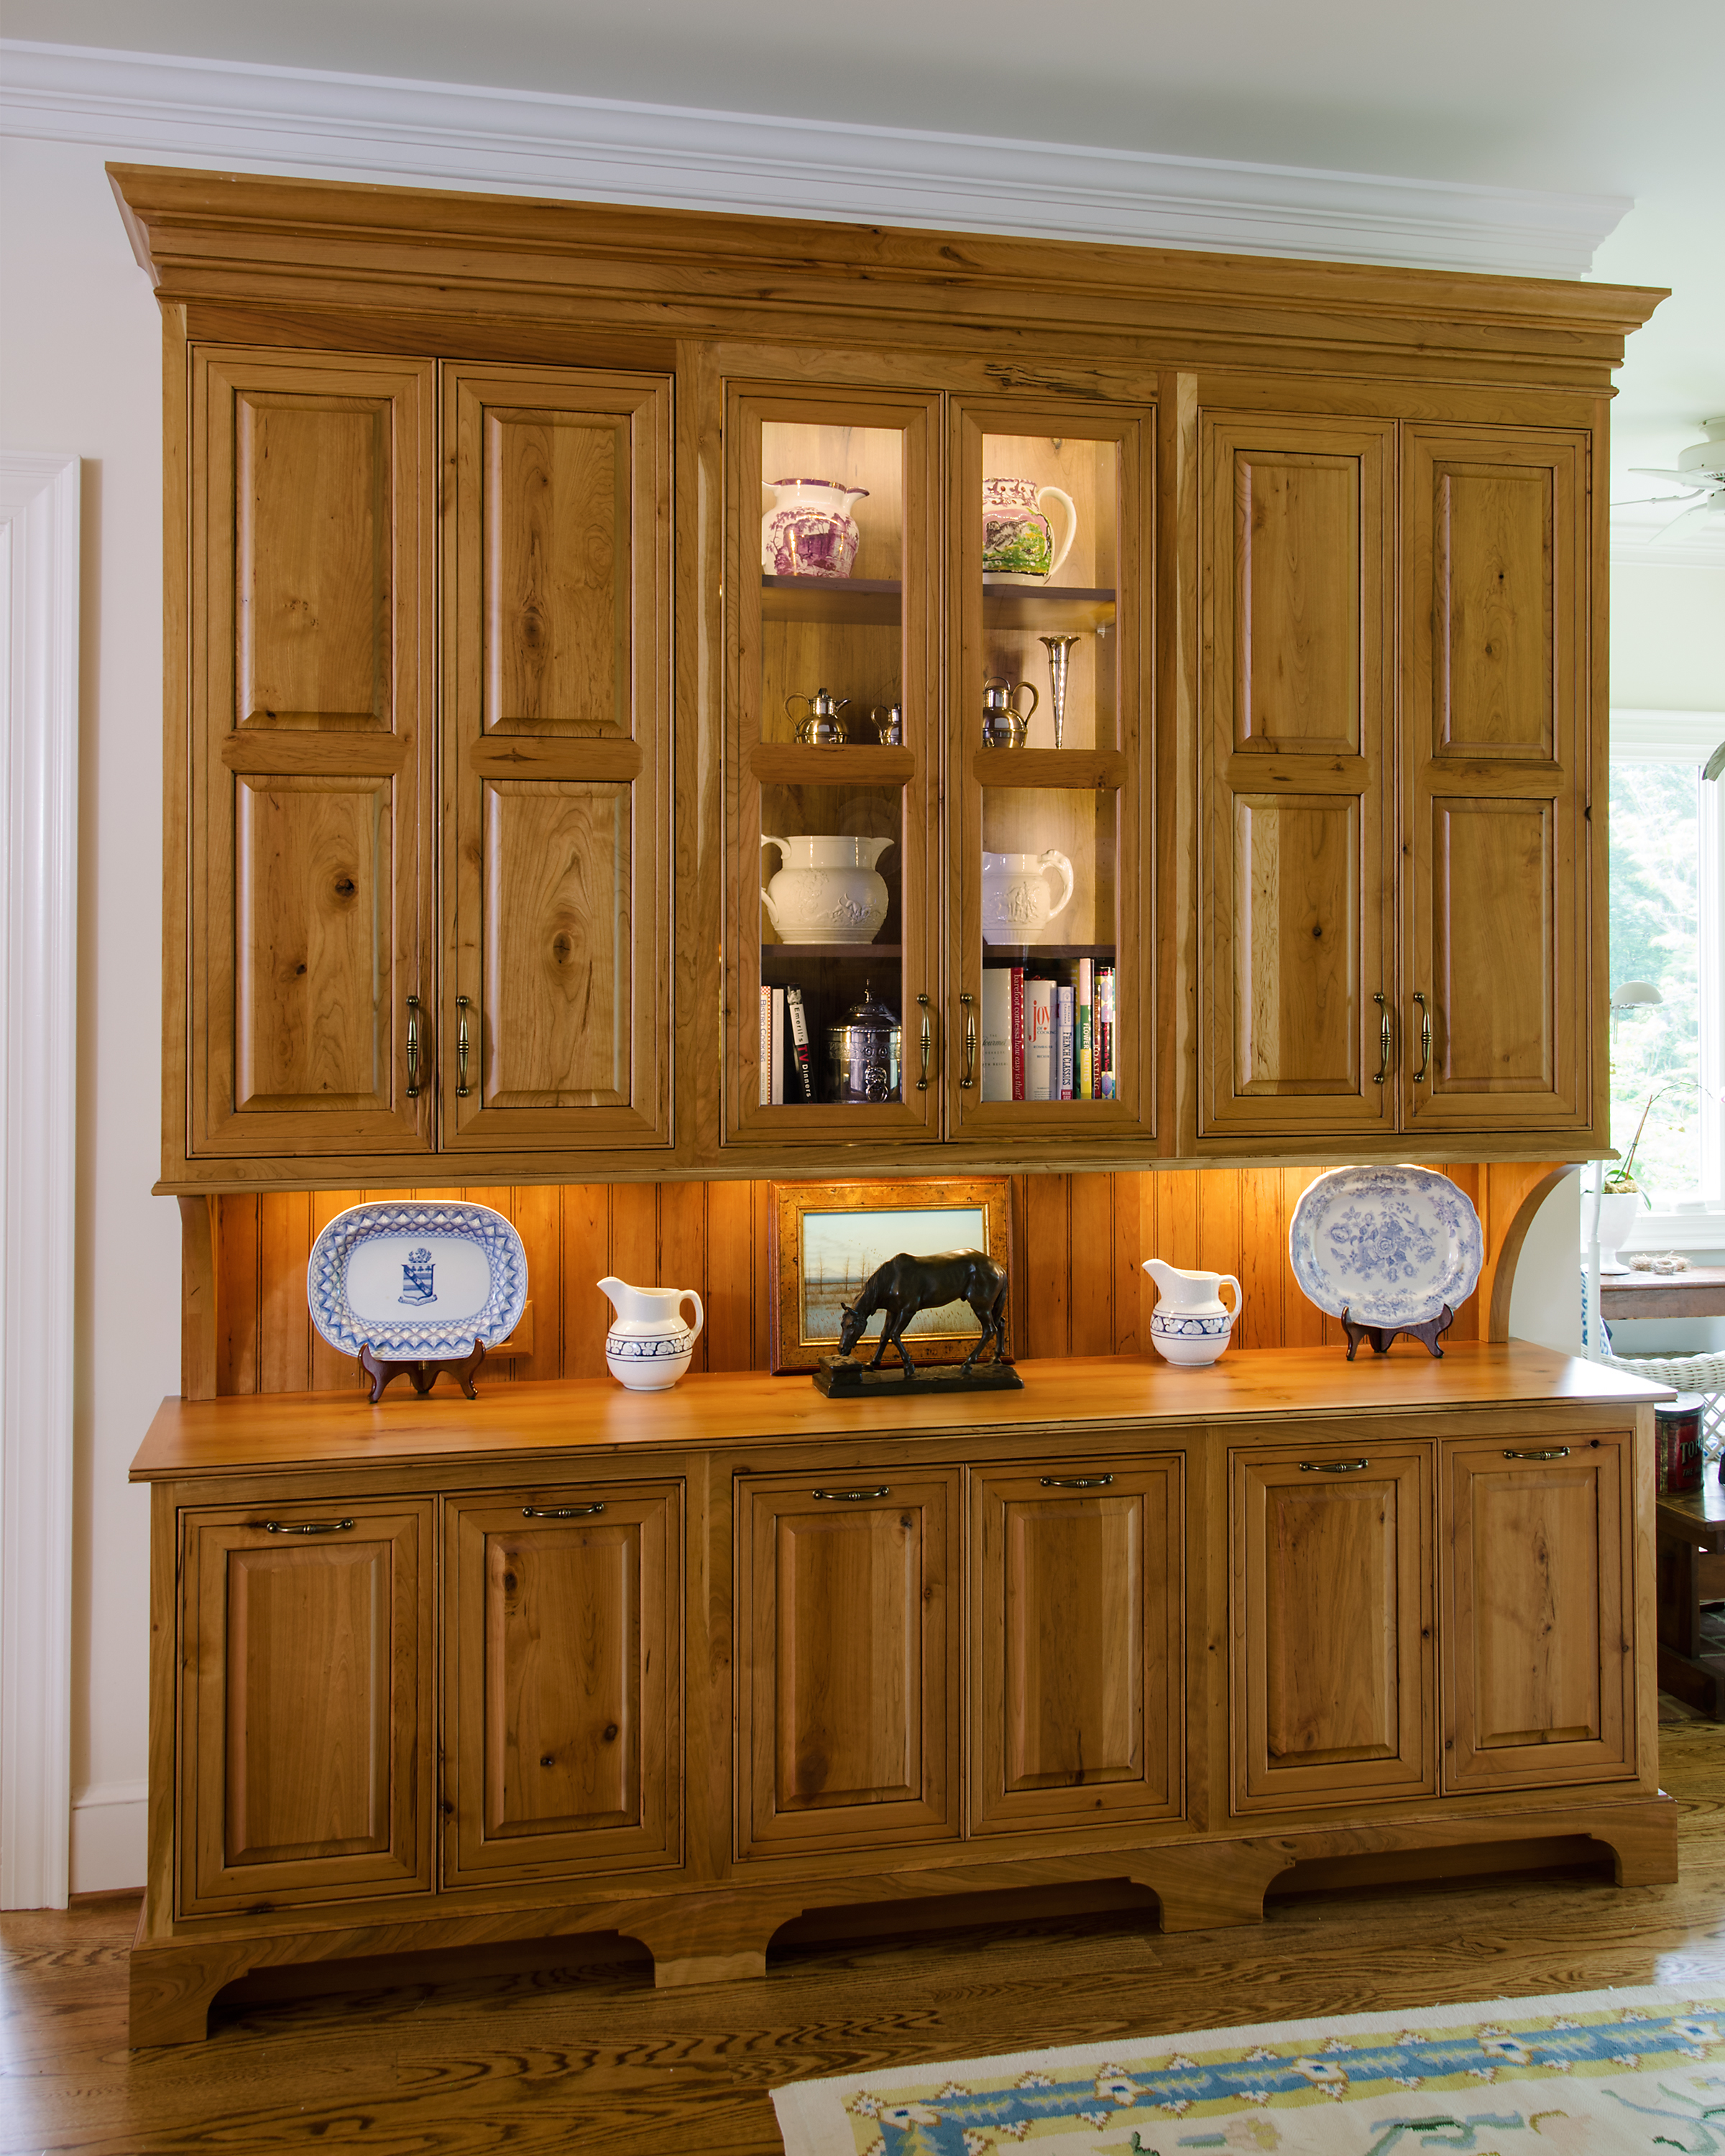 Custom-Kitchens-Armstrong-Kitchen-52813-Pantry-Cabinet-2.jpg